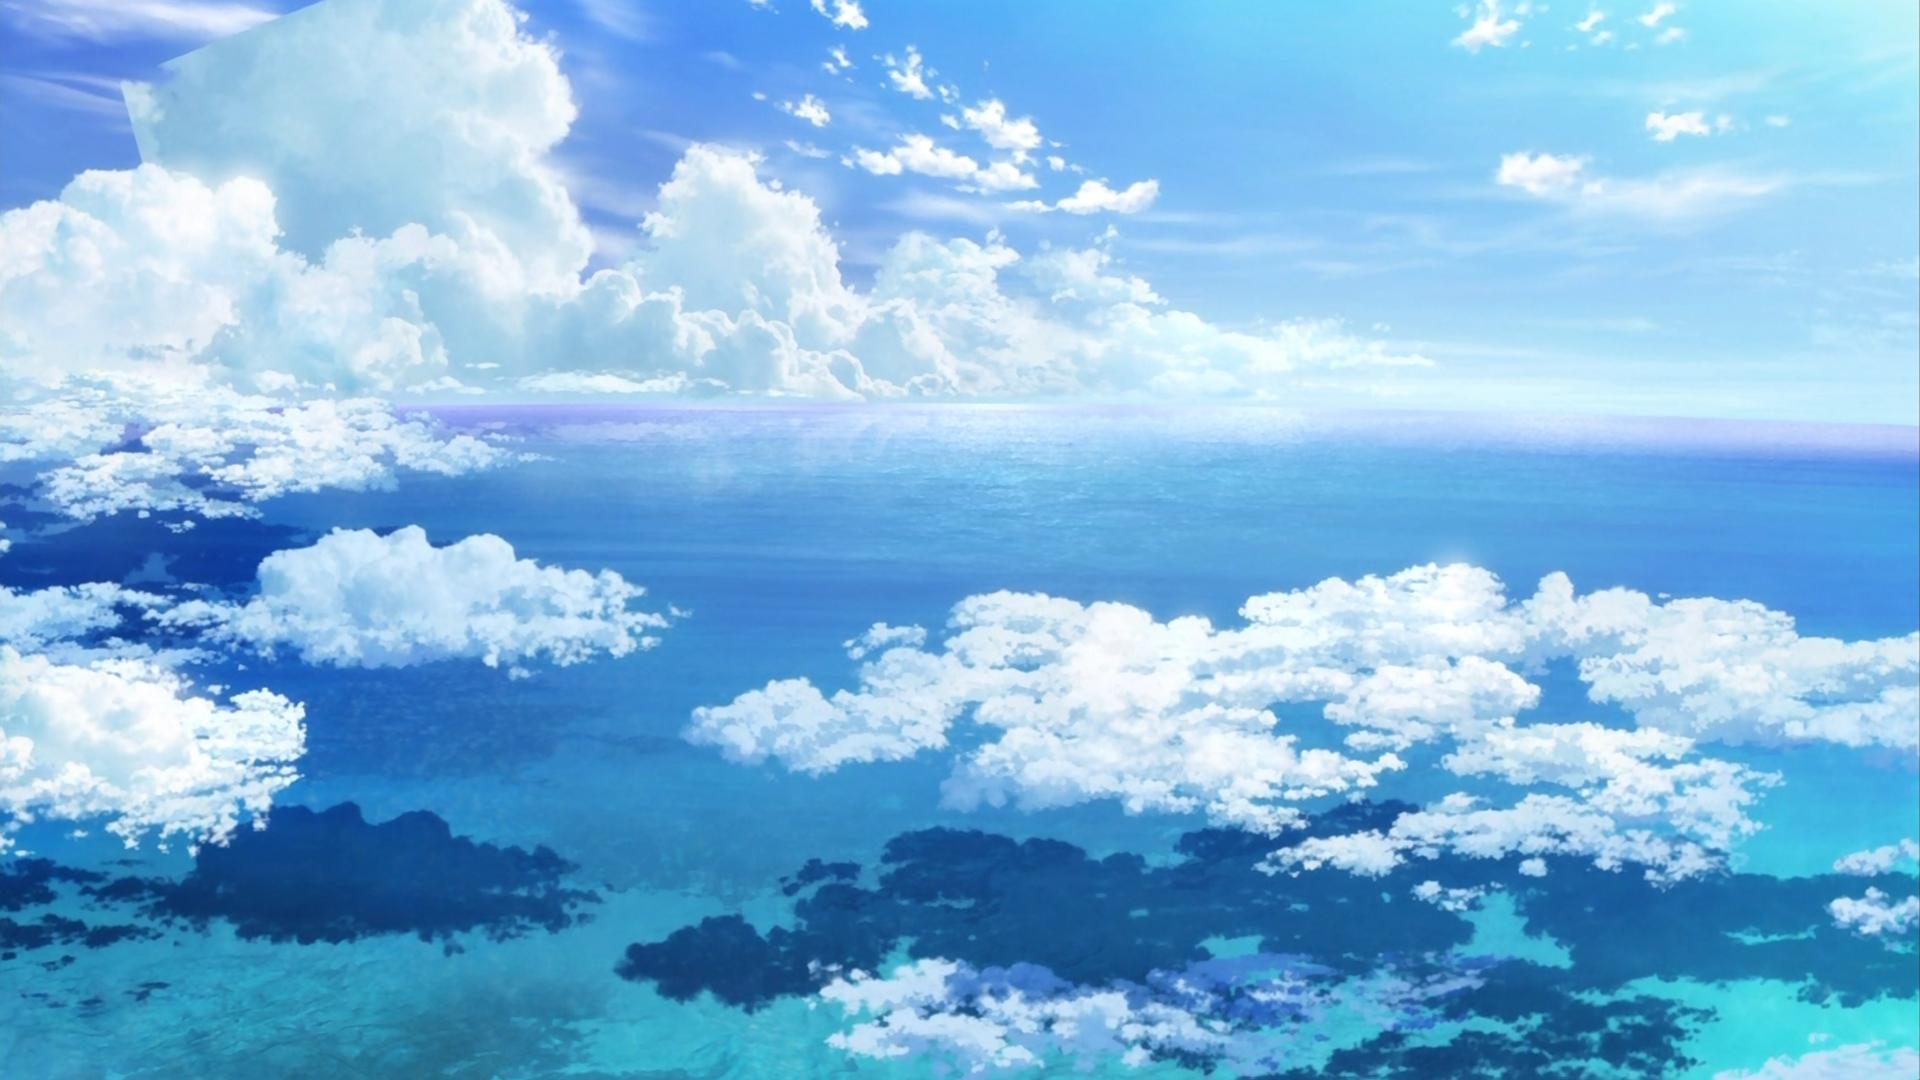 Anime Sky Wallpaper Posted By John Walker